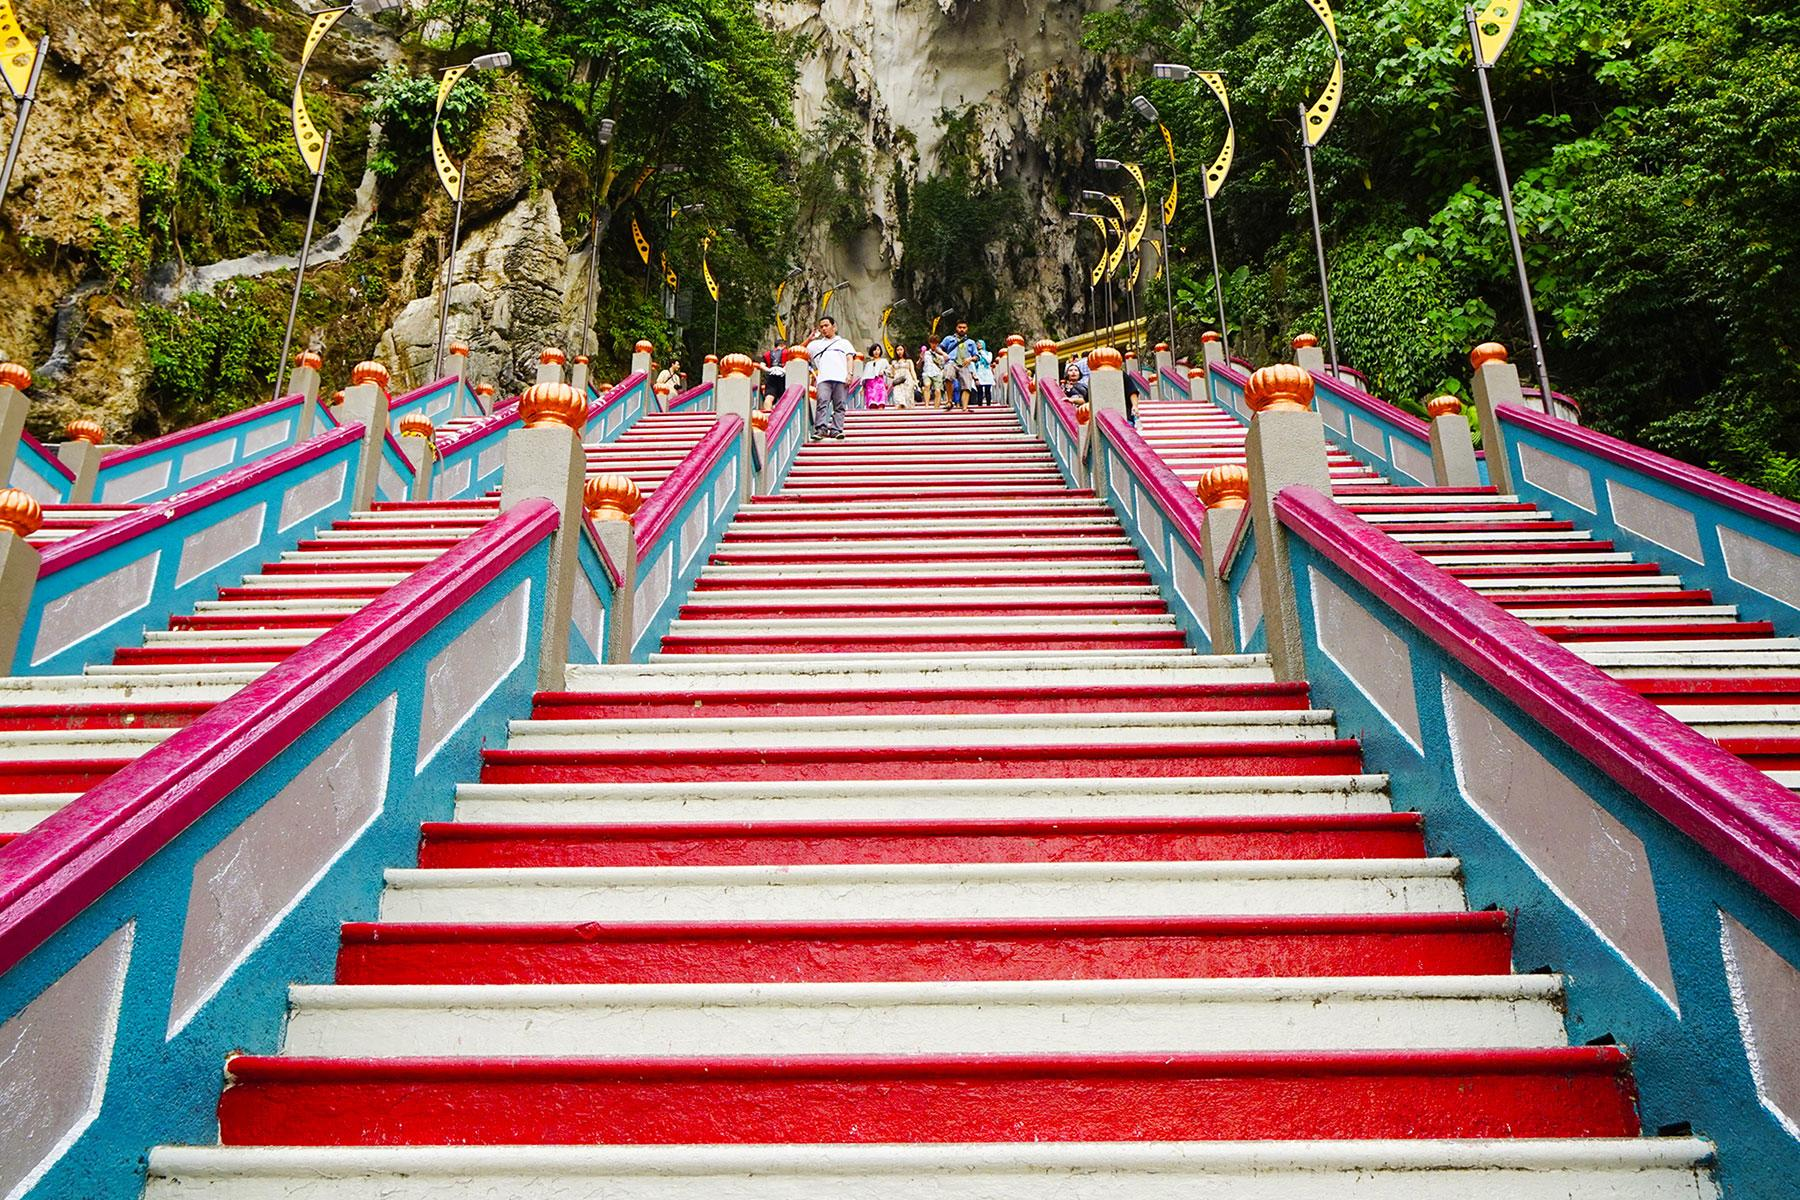 The 20 Most Incredible Staircases in the World – Fodors Travel Guide